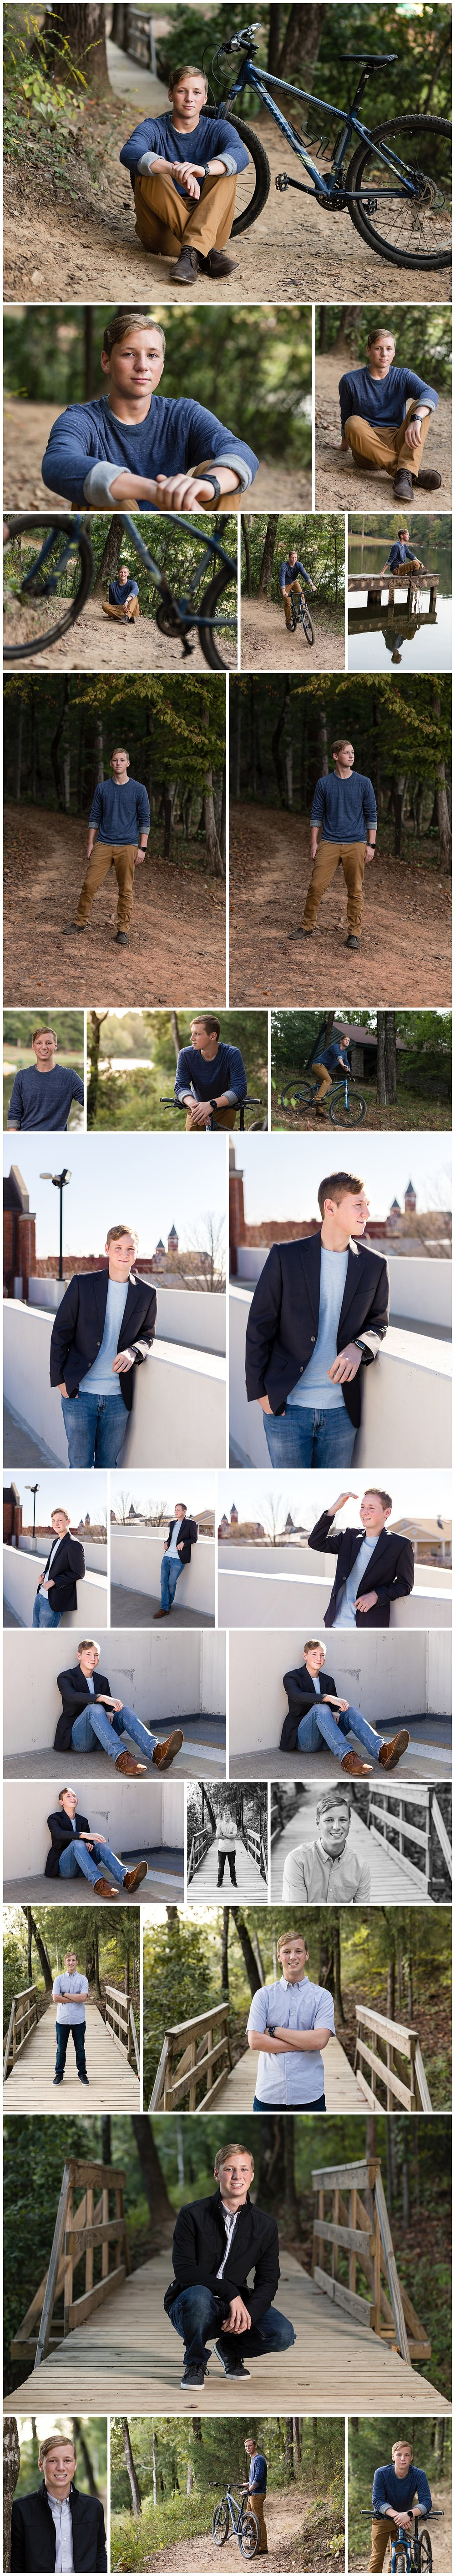 andrew auburn high school senior pictures - lbeesleyphoto